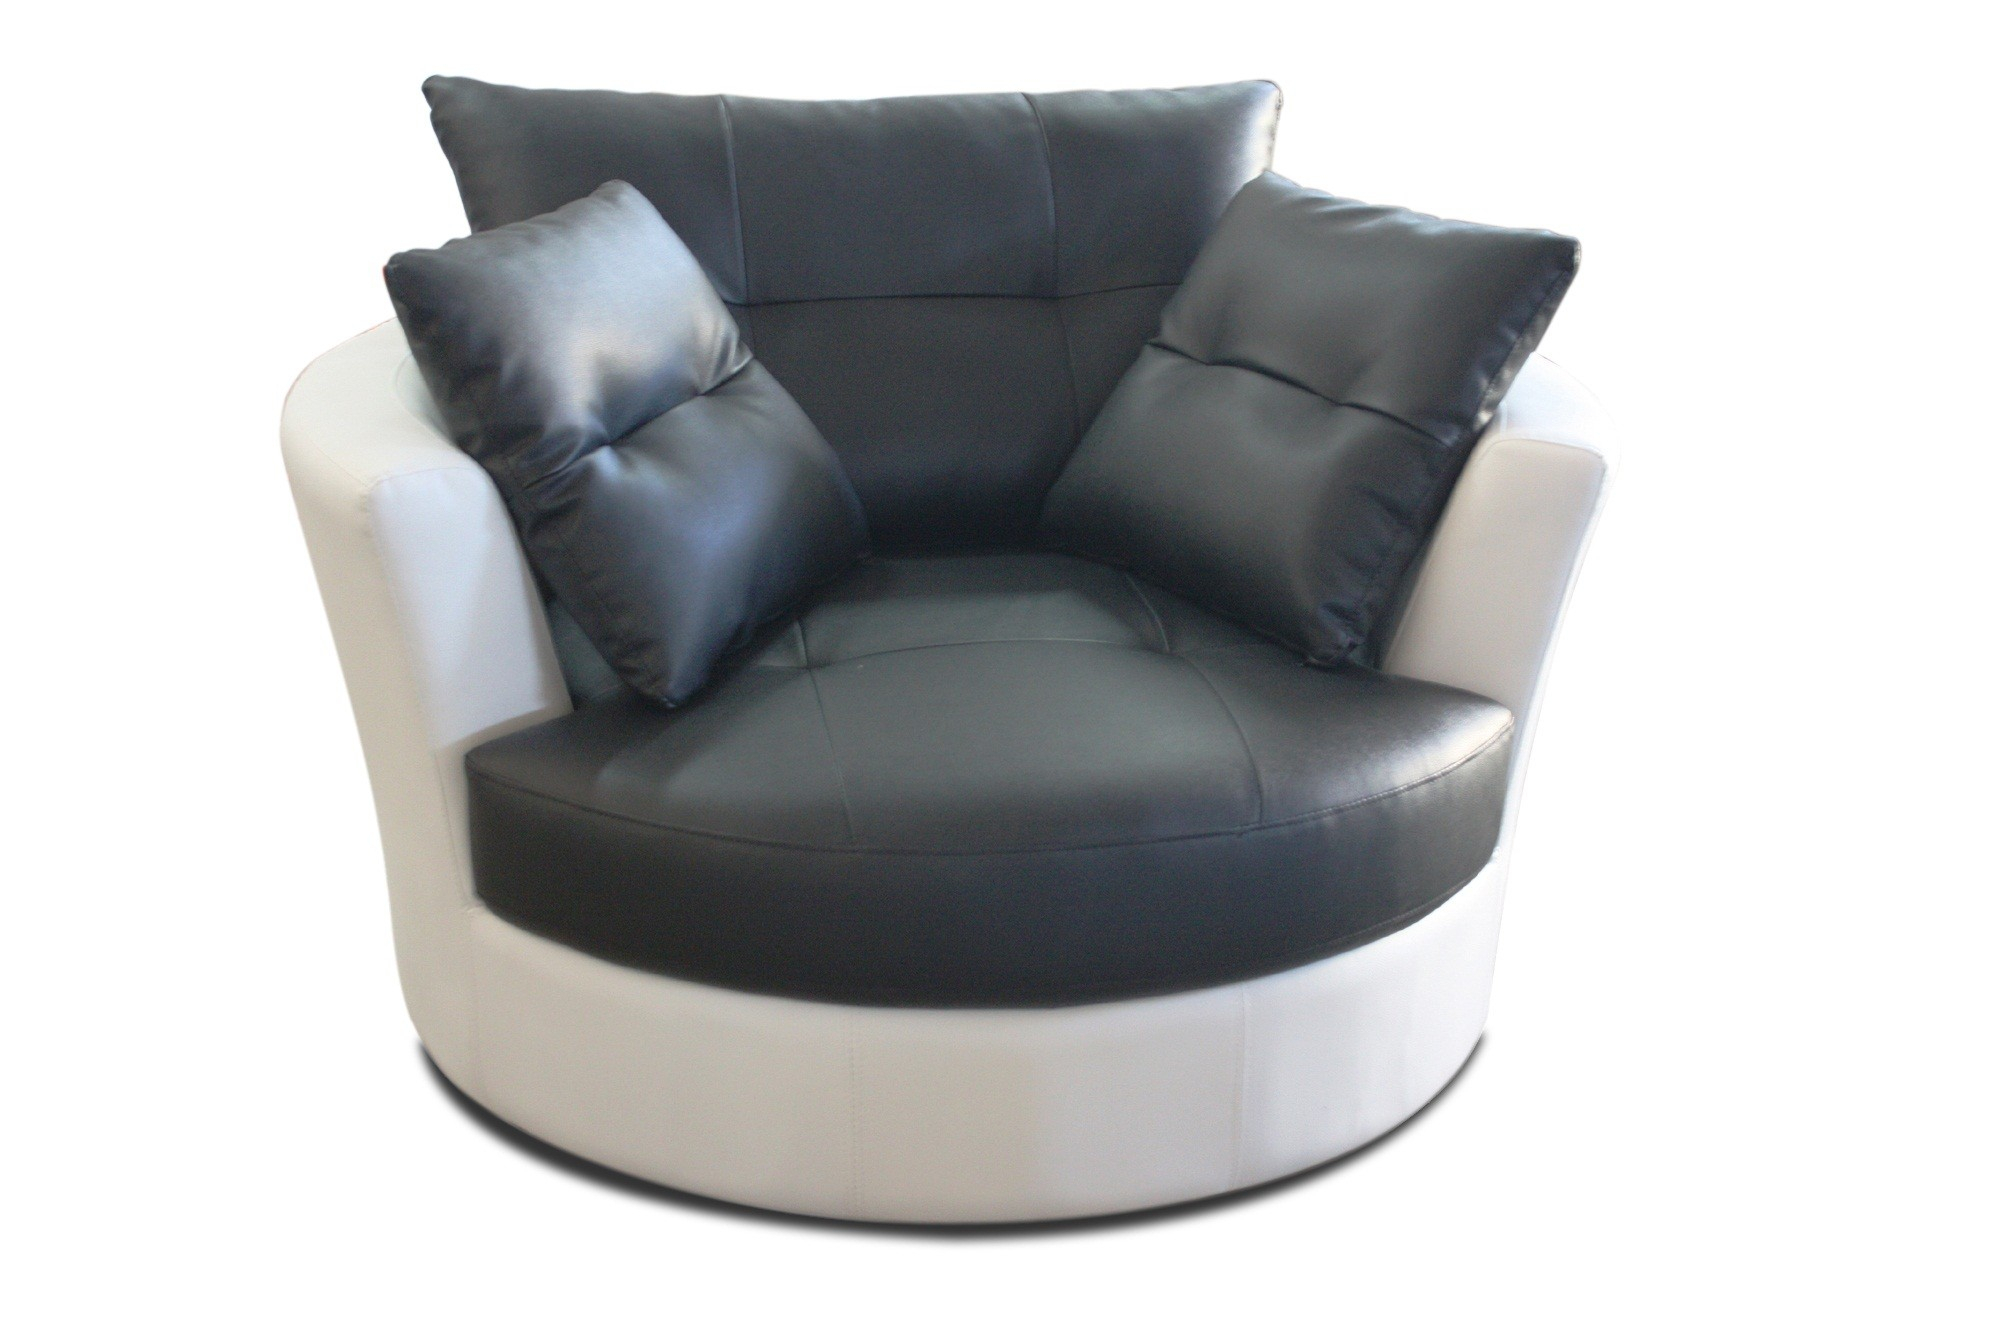 Black Couch Ottoman Reupholster Sofa Designs Clipgoo Contemporary For Leather Black Swivel Chairs (Image 1 of 20)